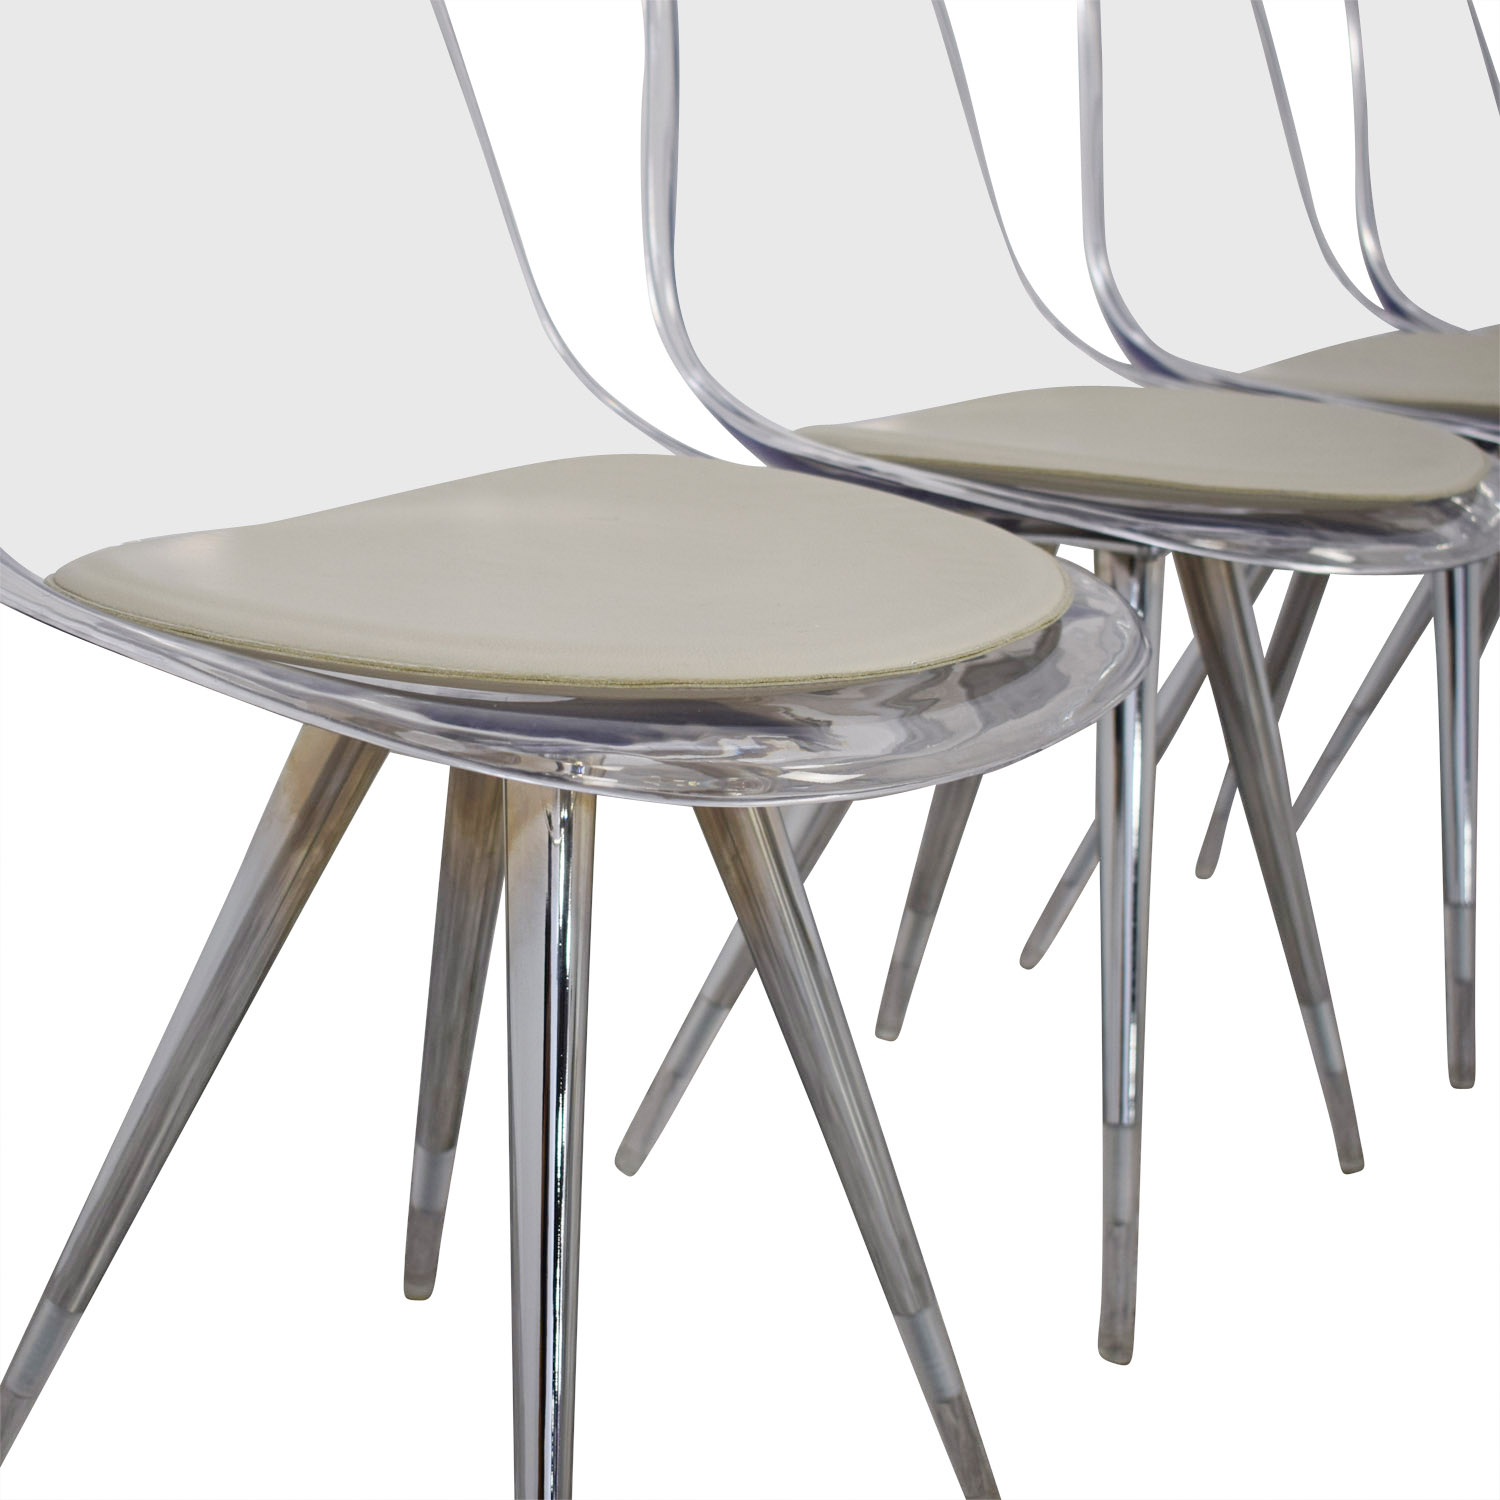 Cite NYC Cite NYC Lucite Dining Chairs with Custom Cushions for sale